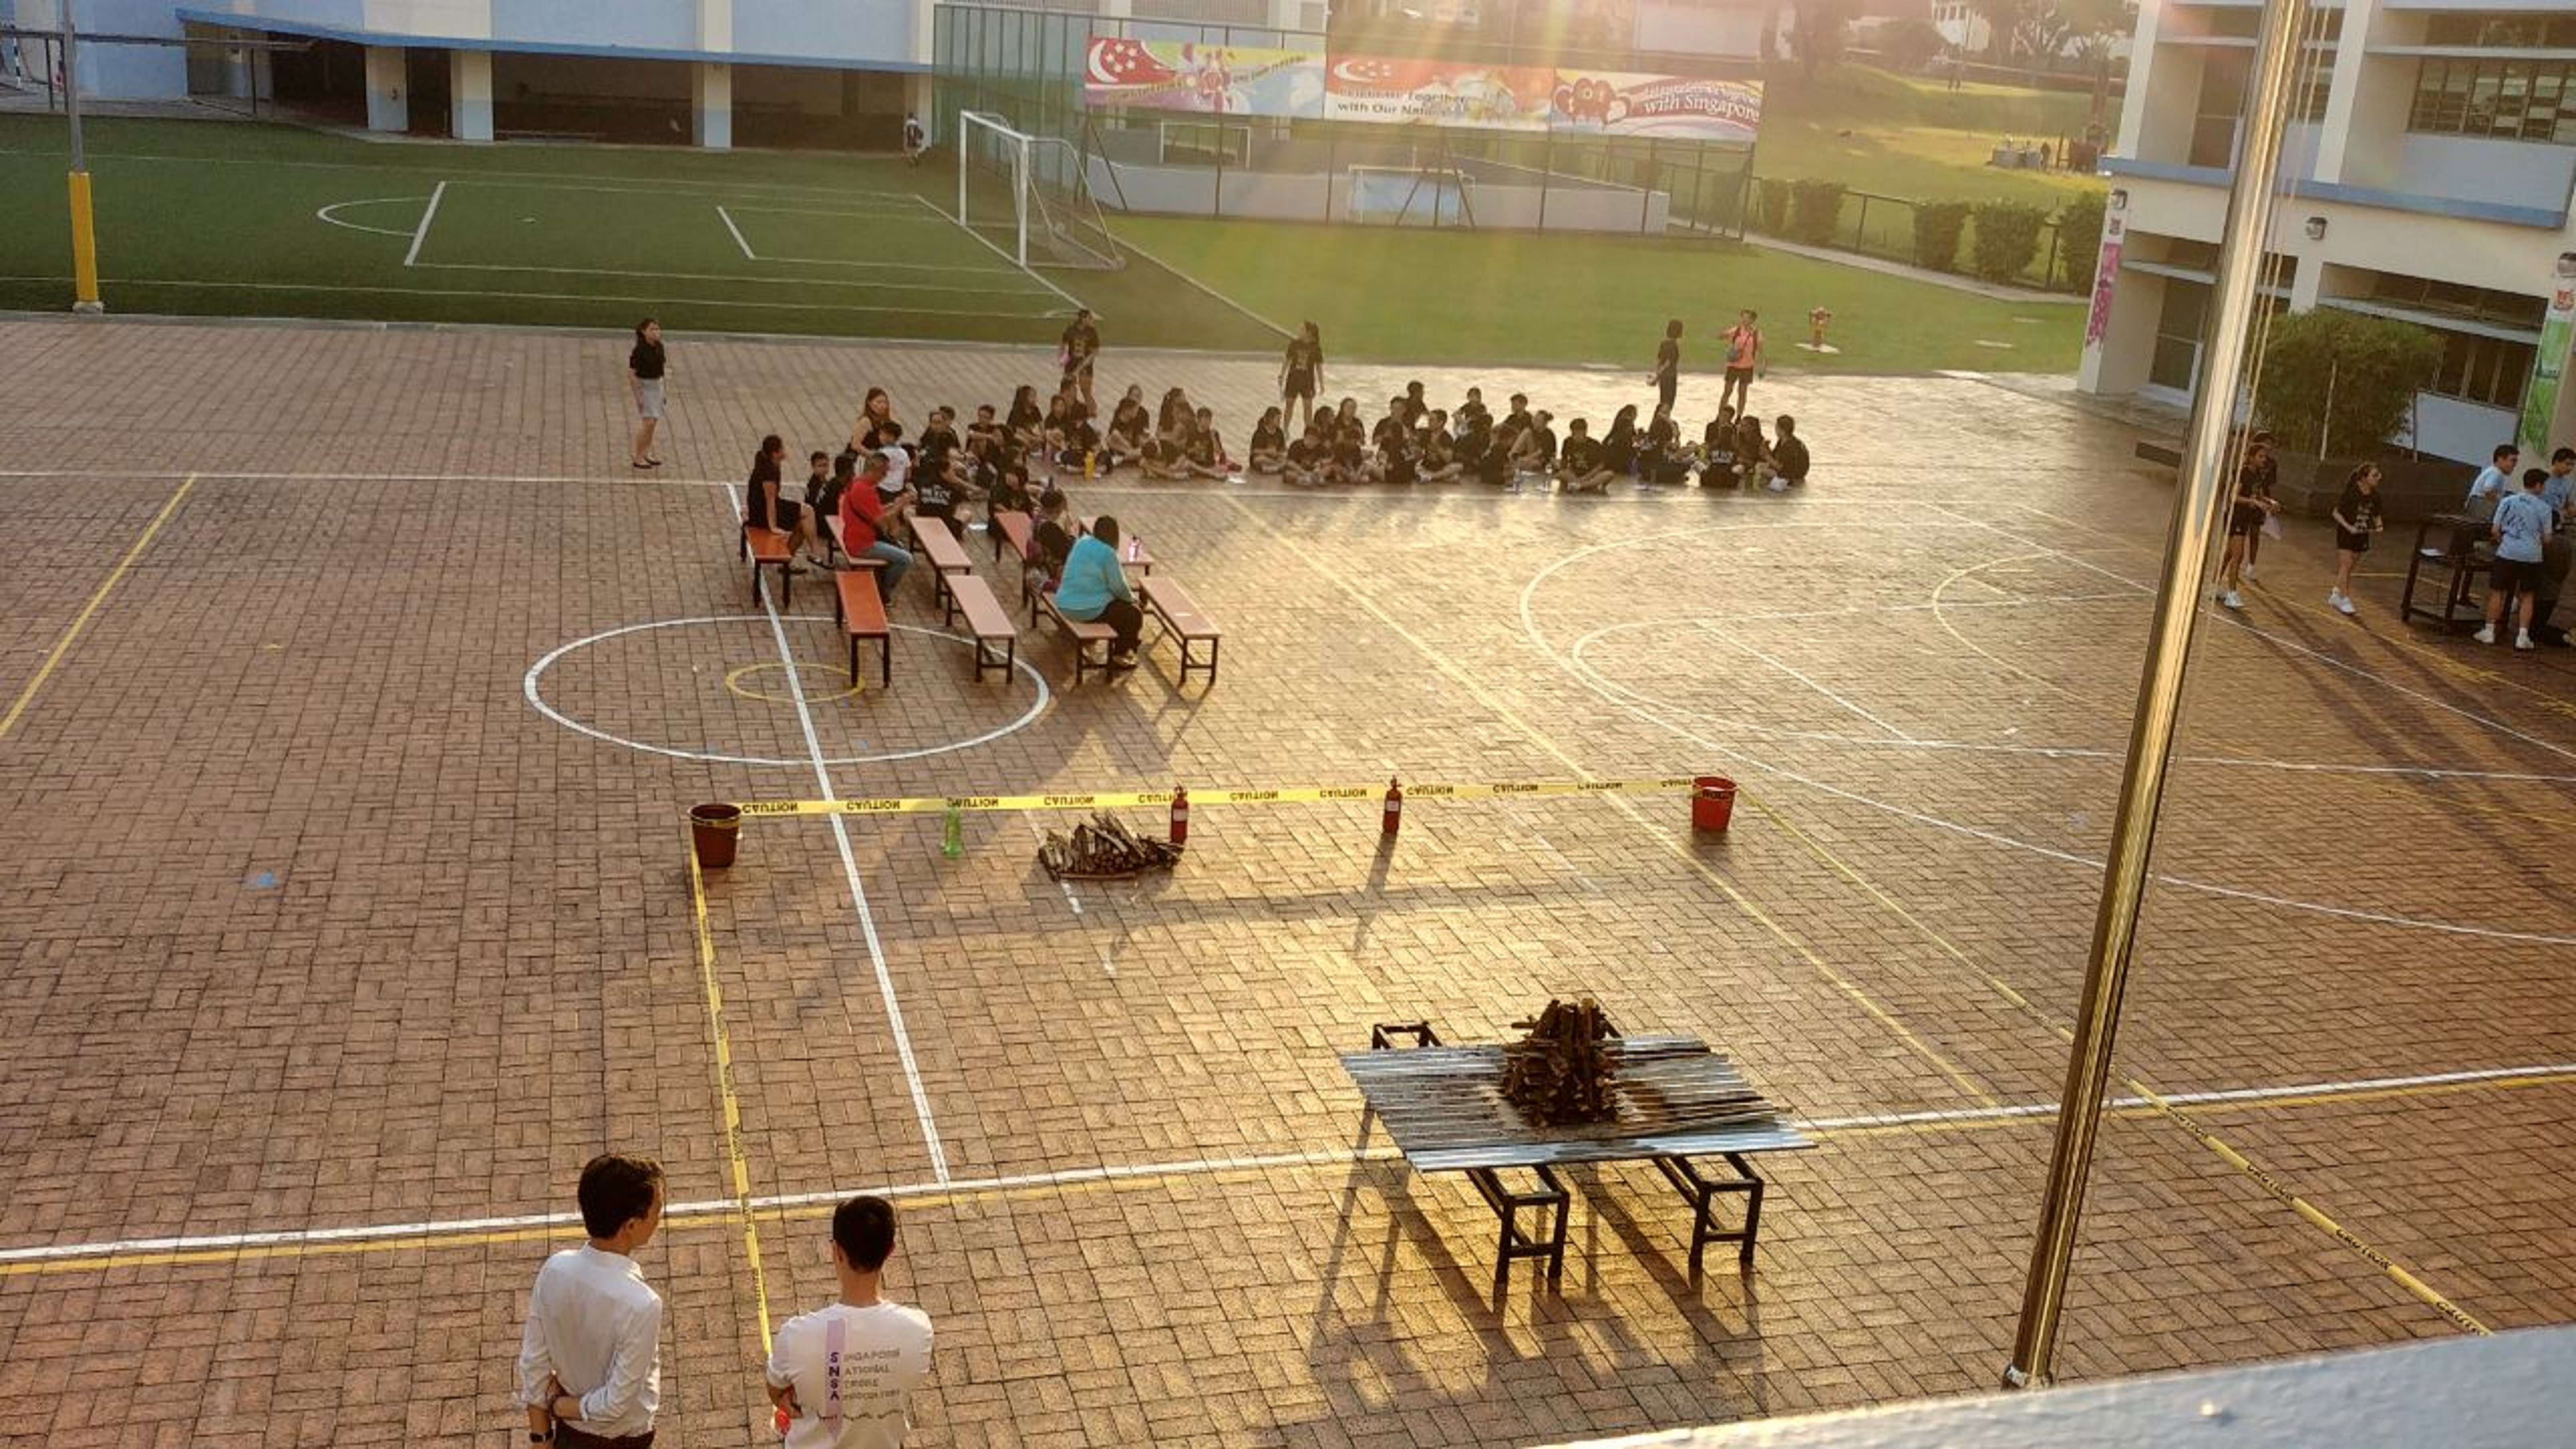 Student council assembly at basketball court (1).jpg